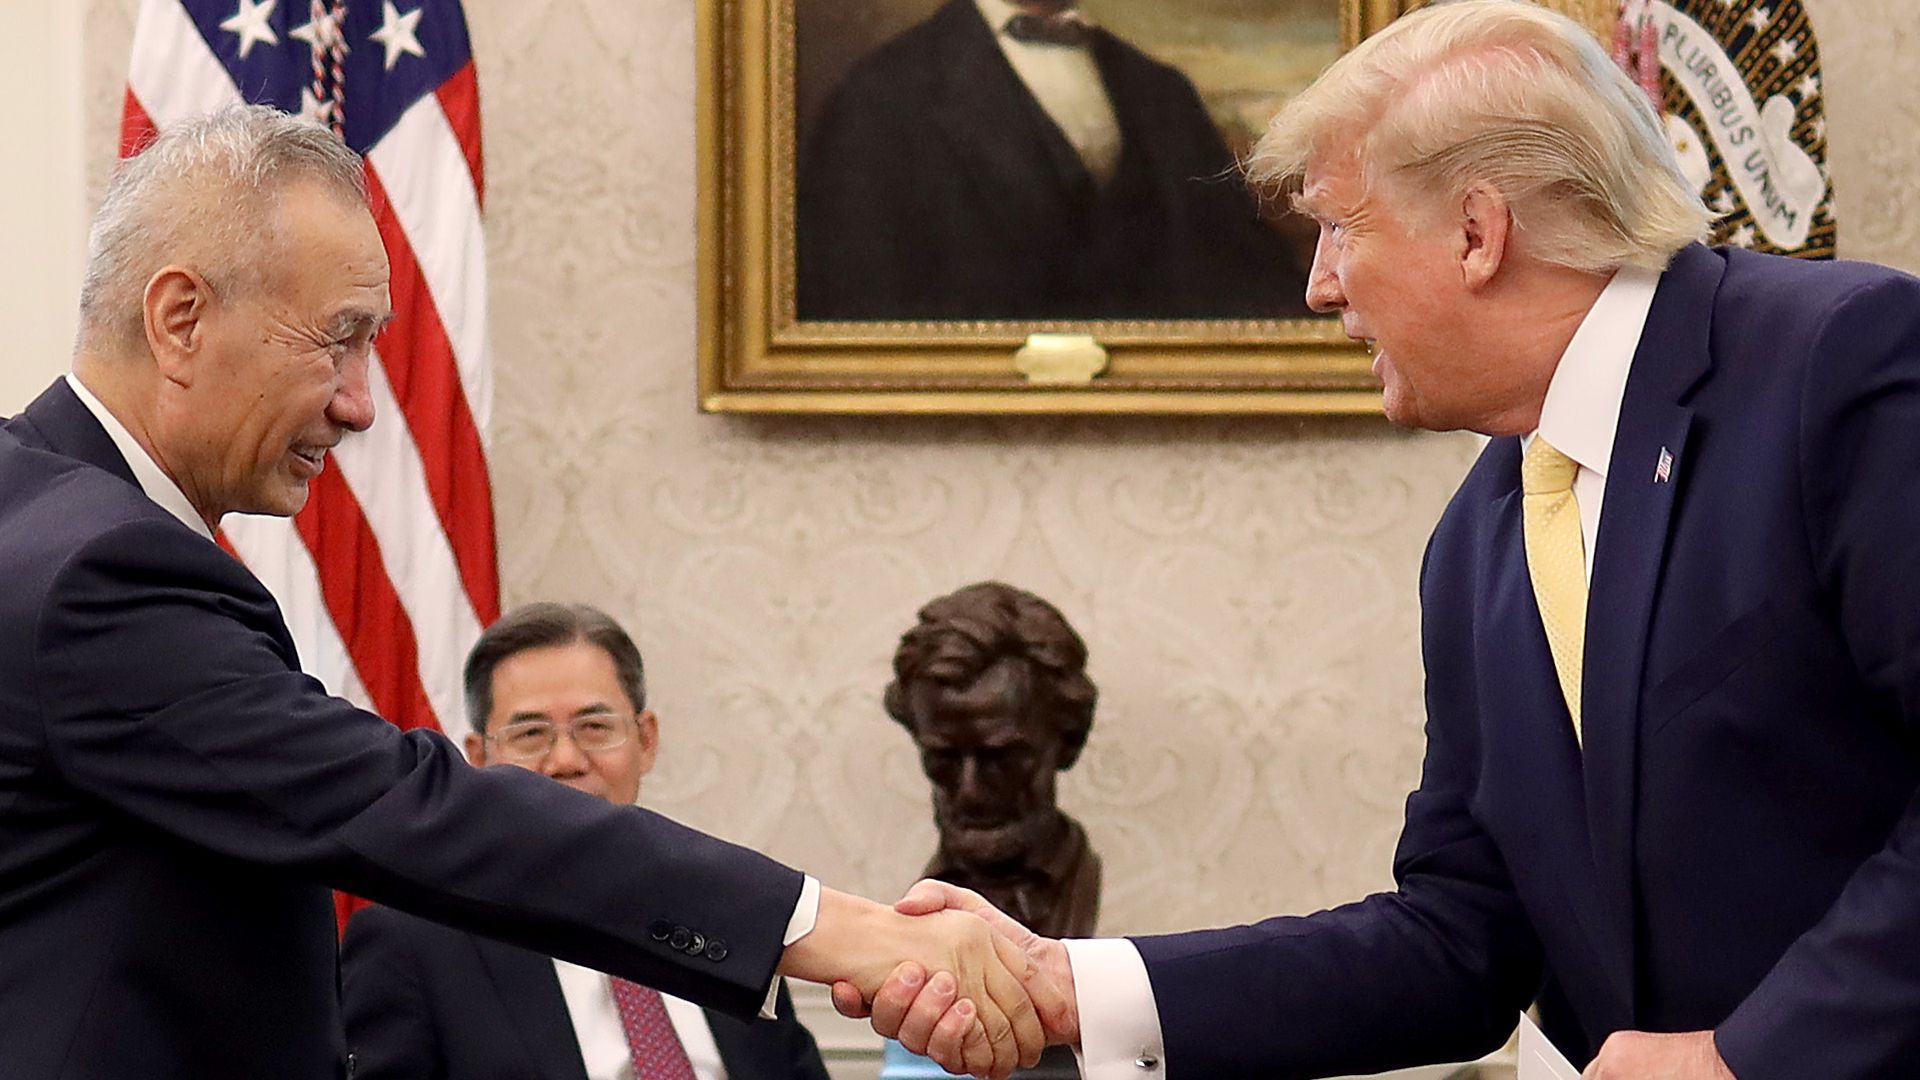 President Trump shakes hands with Chinese Vice Premier Liu He.